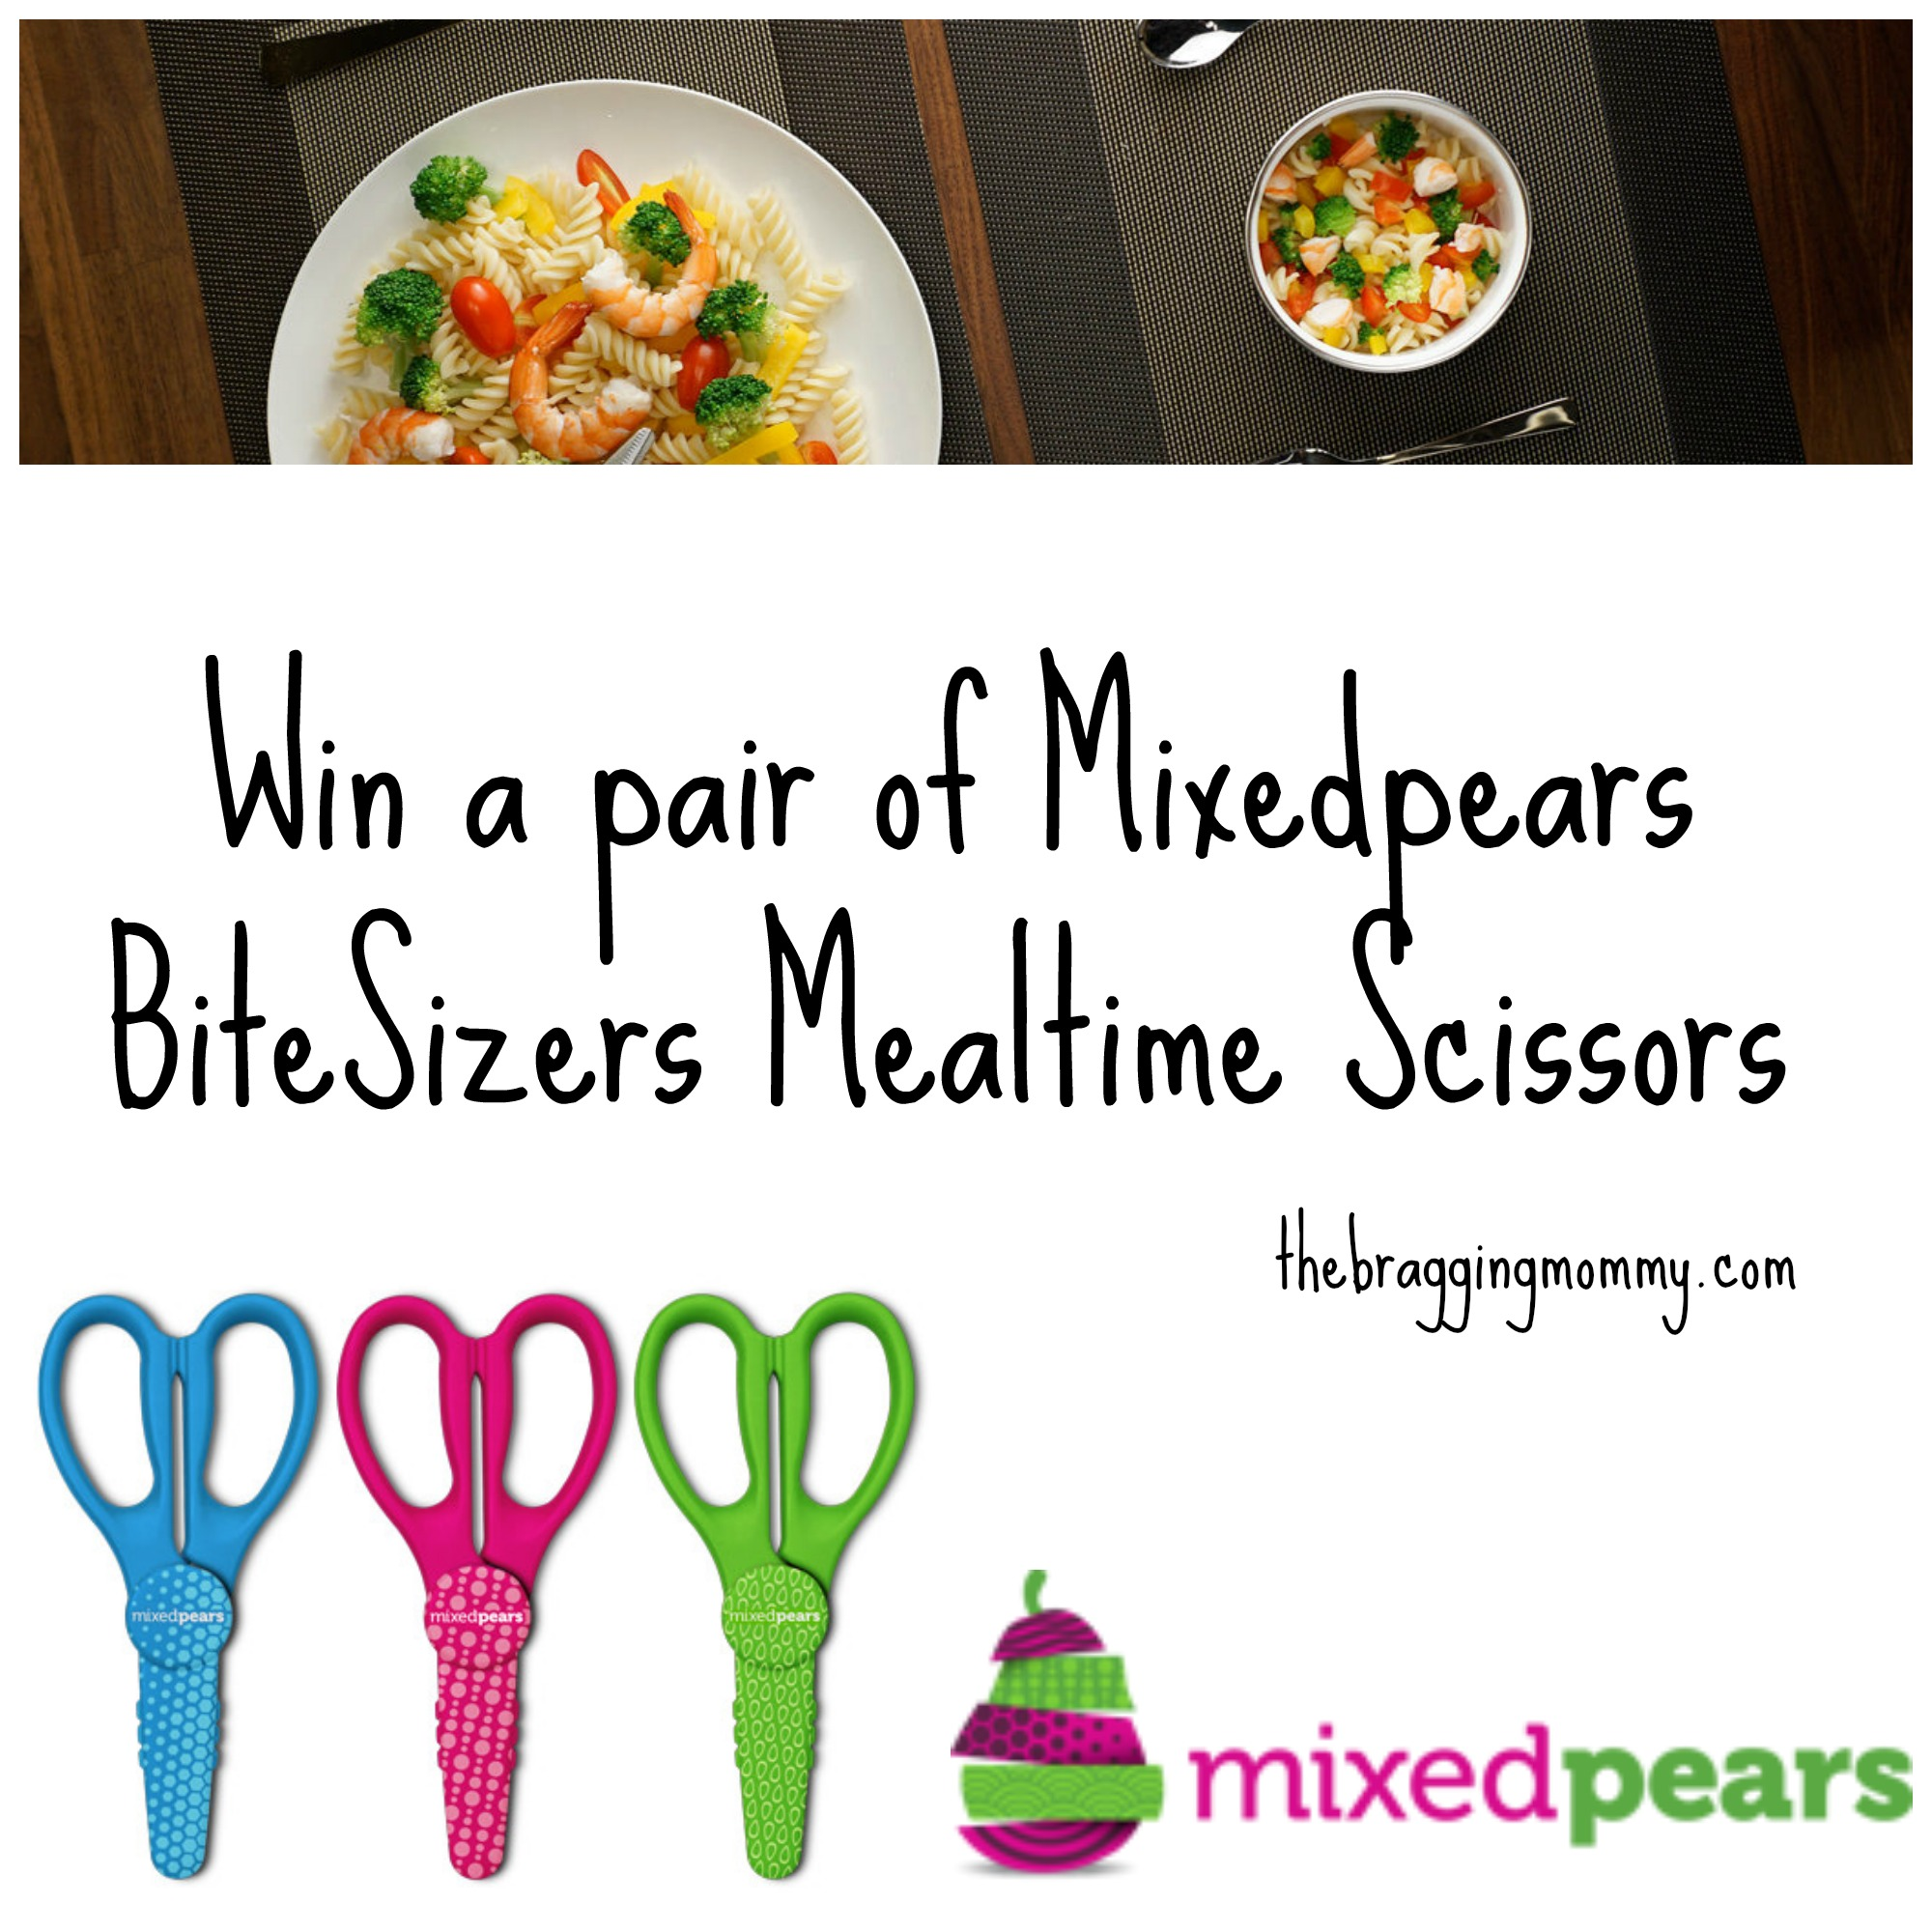 Mixedpears BiteSizers Mealtime Scissors Review and Giveaway